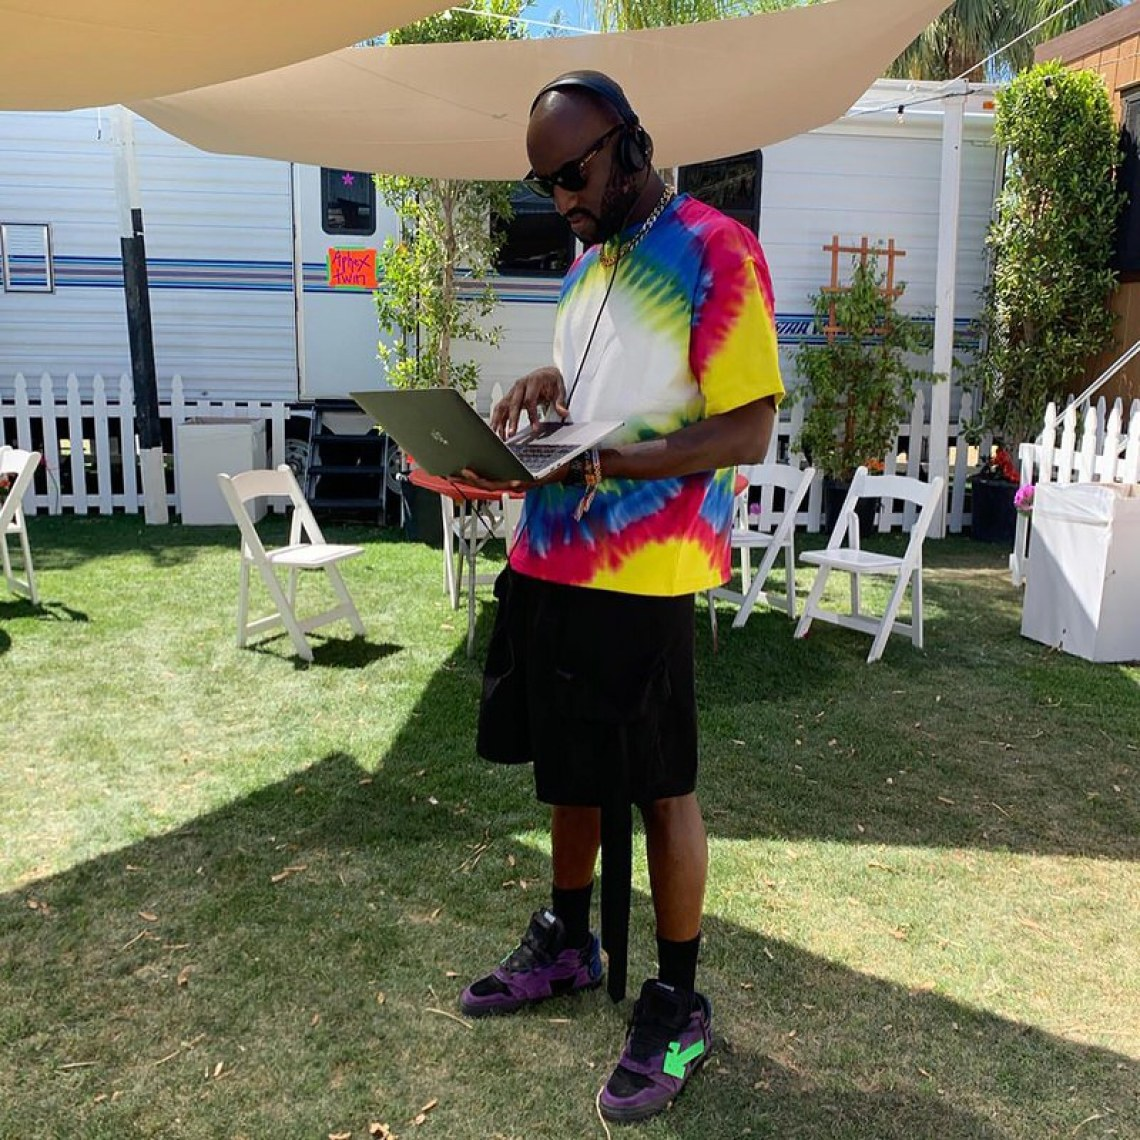 Virgil Abloh in the Off White sneakers